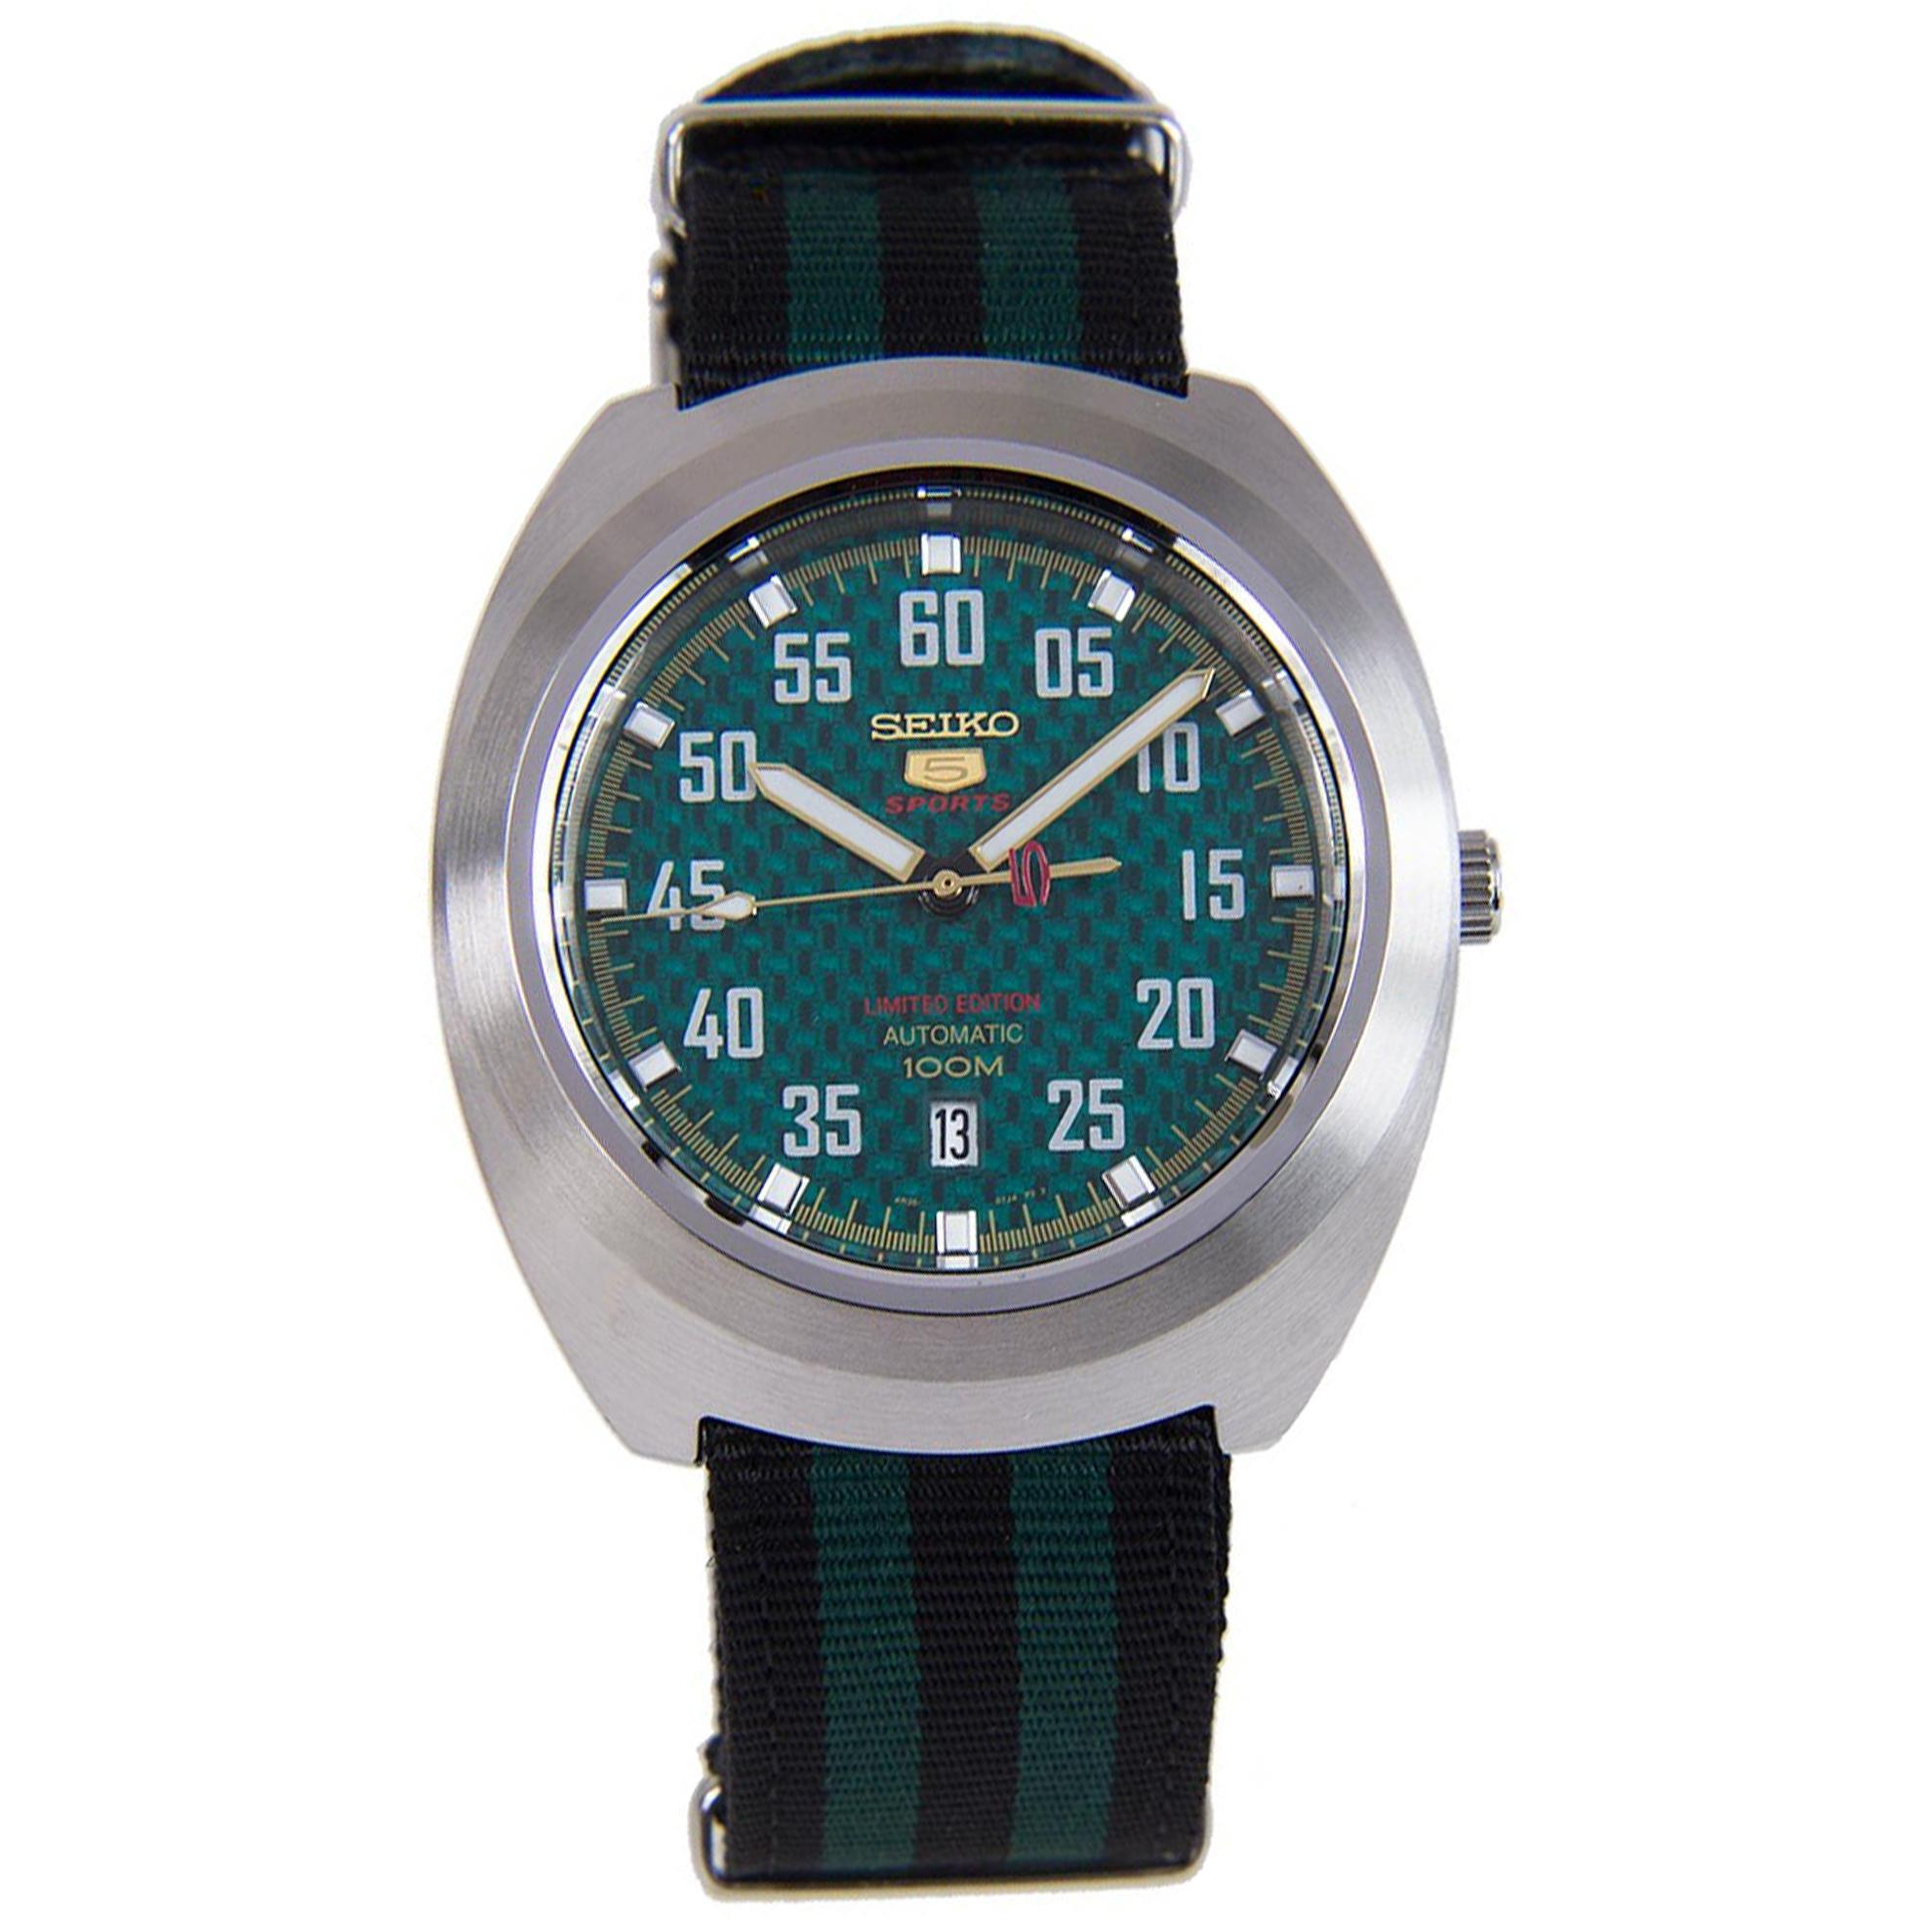 Seiko SE-SRPA89 Seiko Limited Edition Automatic Green Carbon Fiber Dial Black/Green Nato Strap